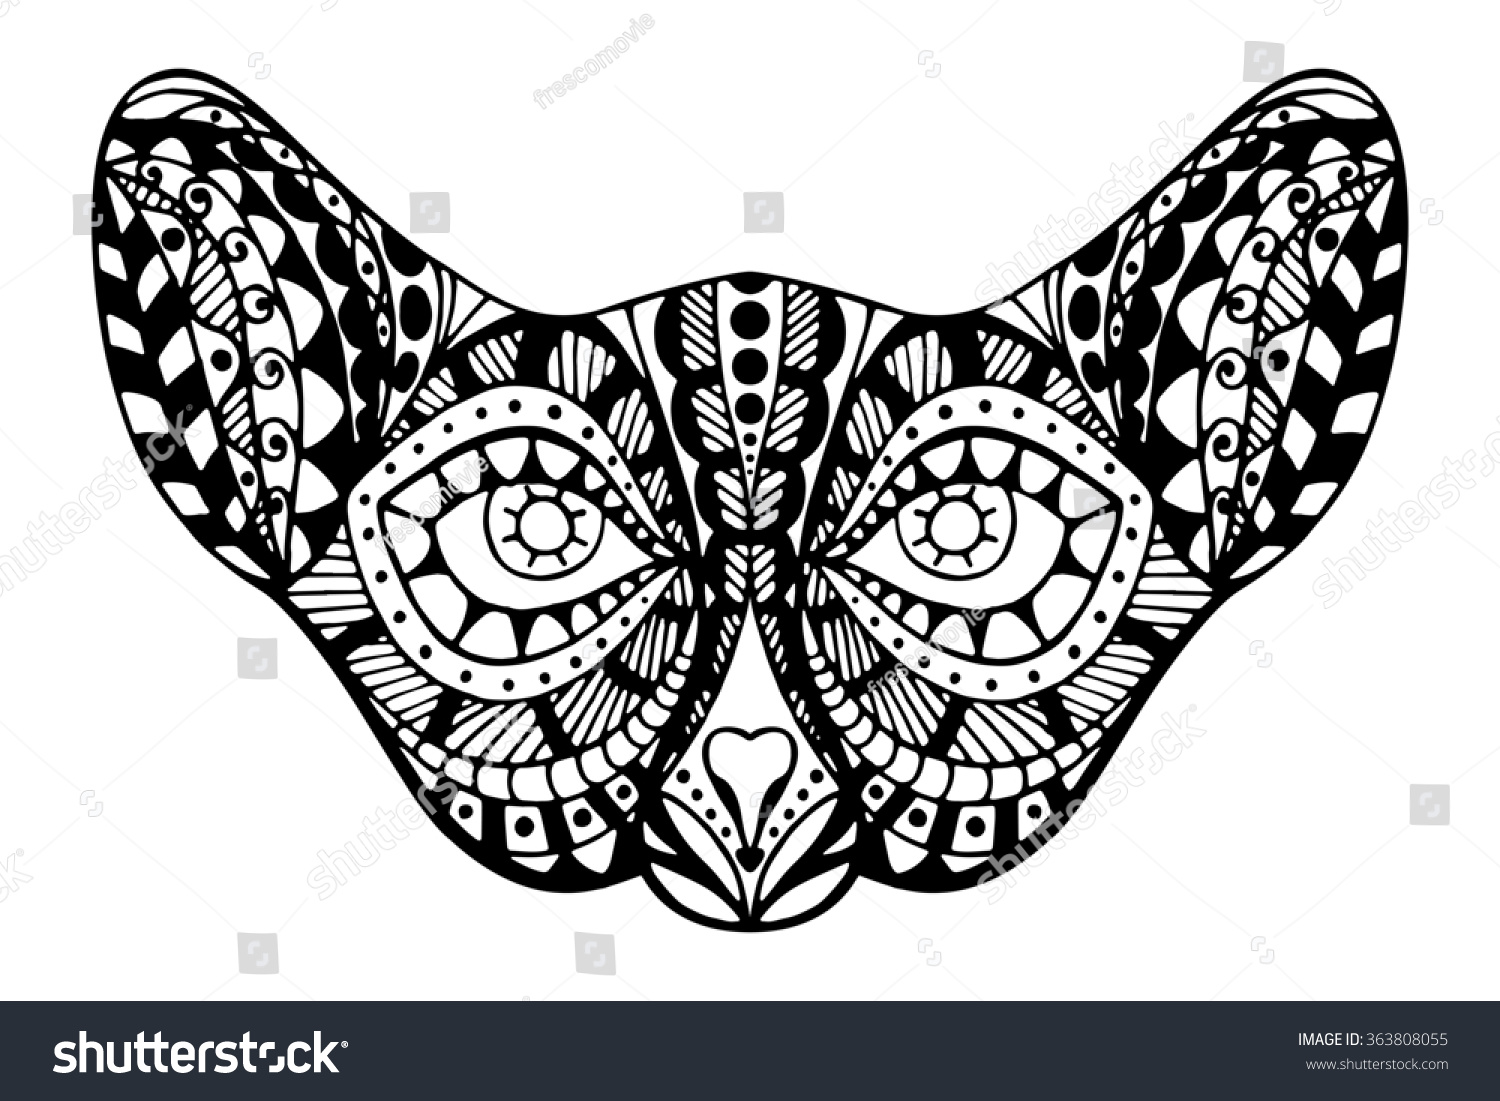 zentangle stylized cat face tribal animal stock illustration